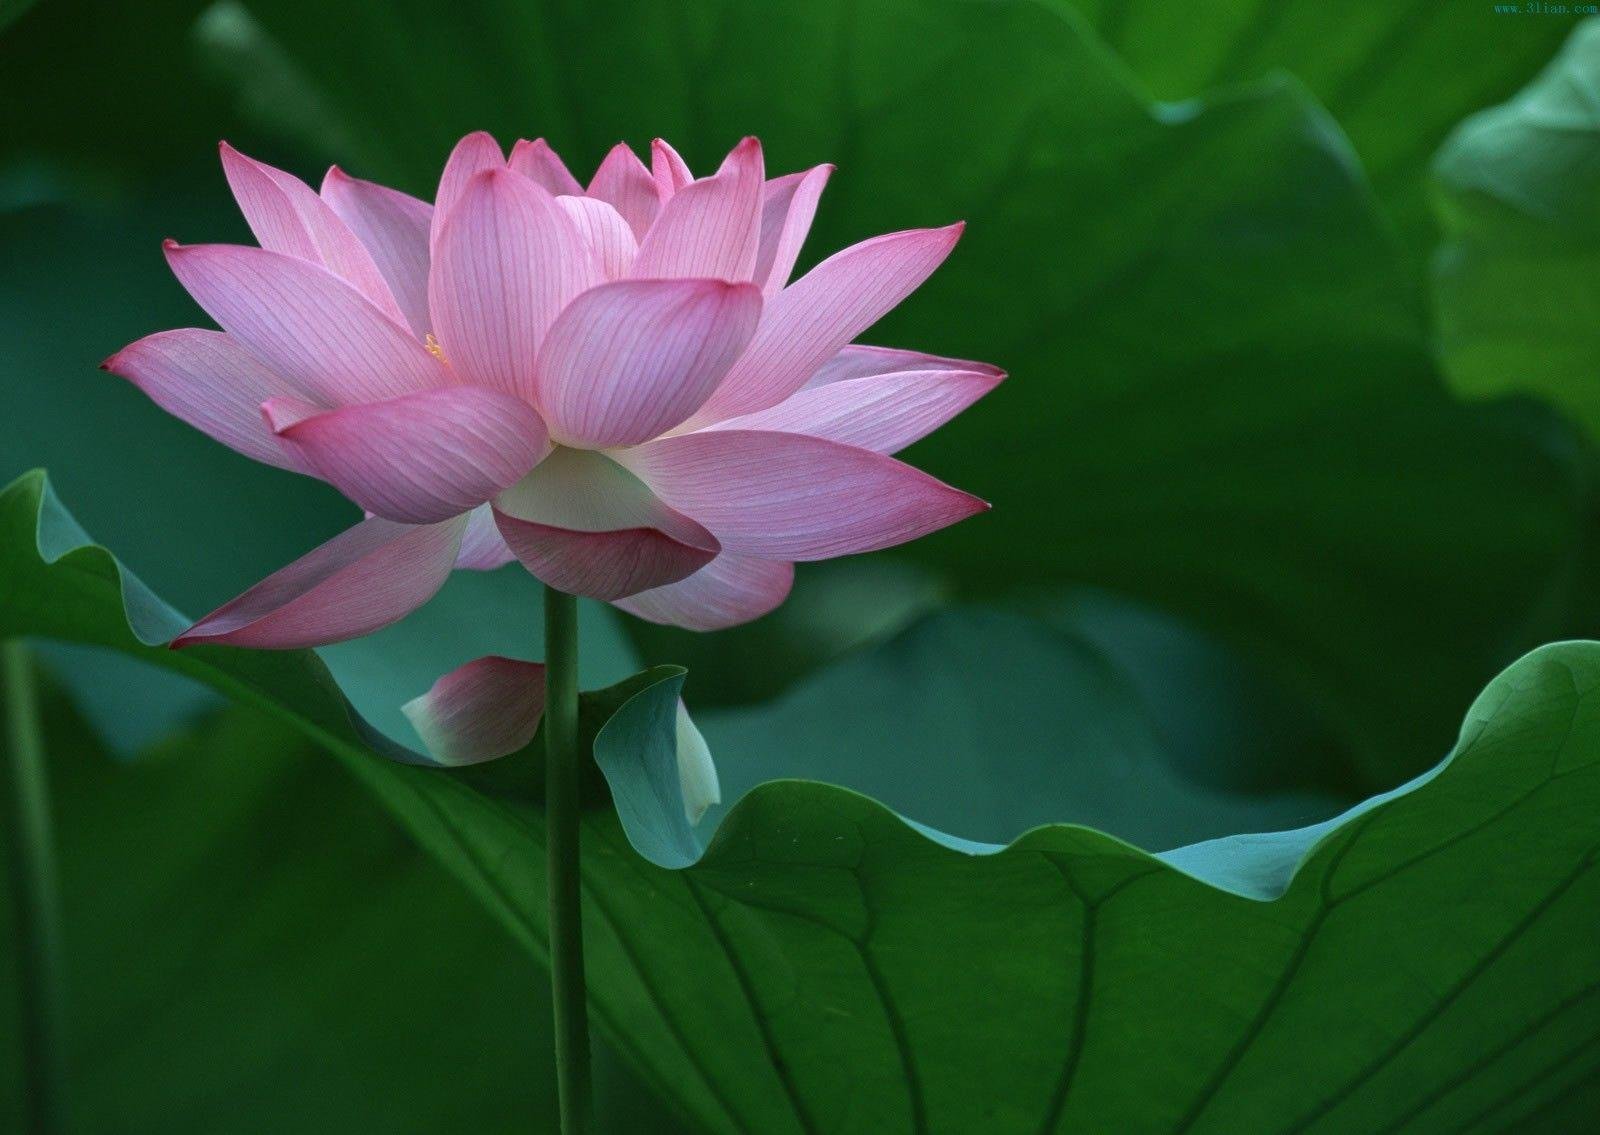 Lotus flower wallpapers wallpaper cave lotus flower pink desktop wallpapers for free free download izmirmasajfo